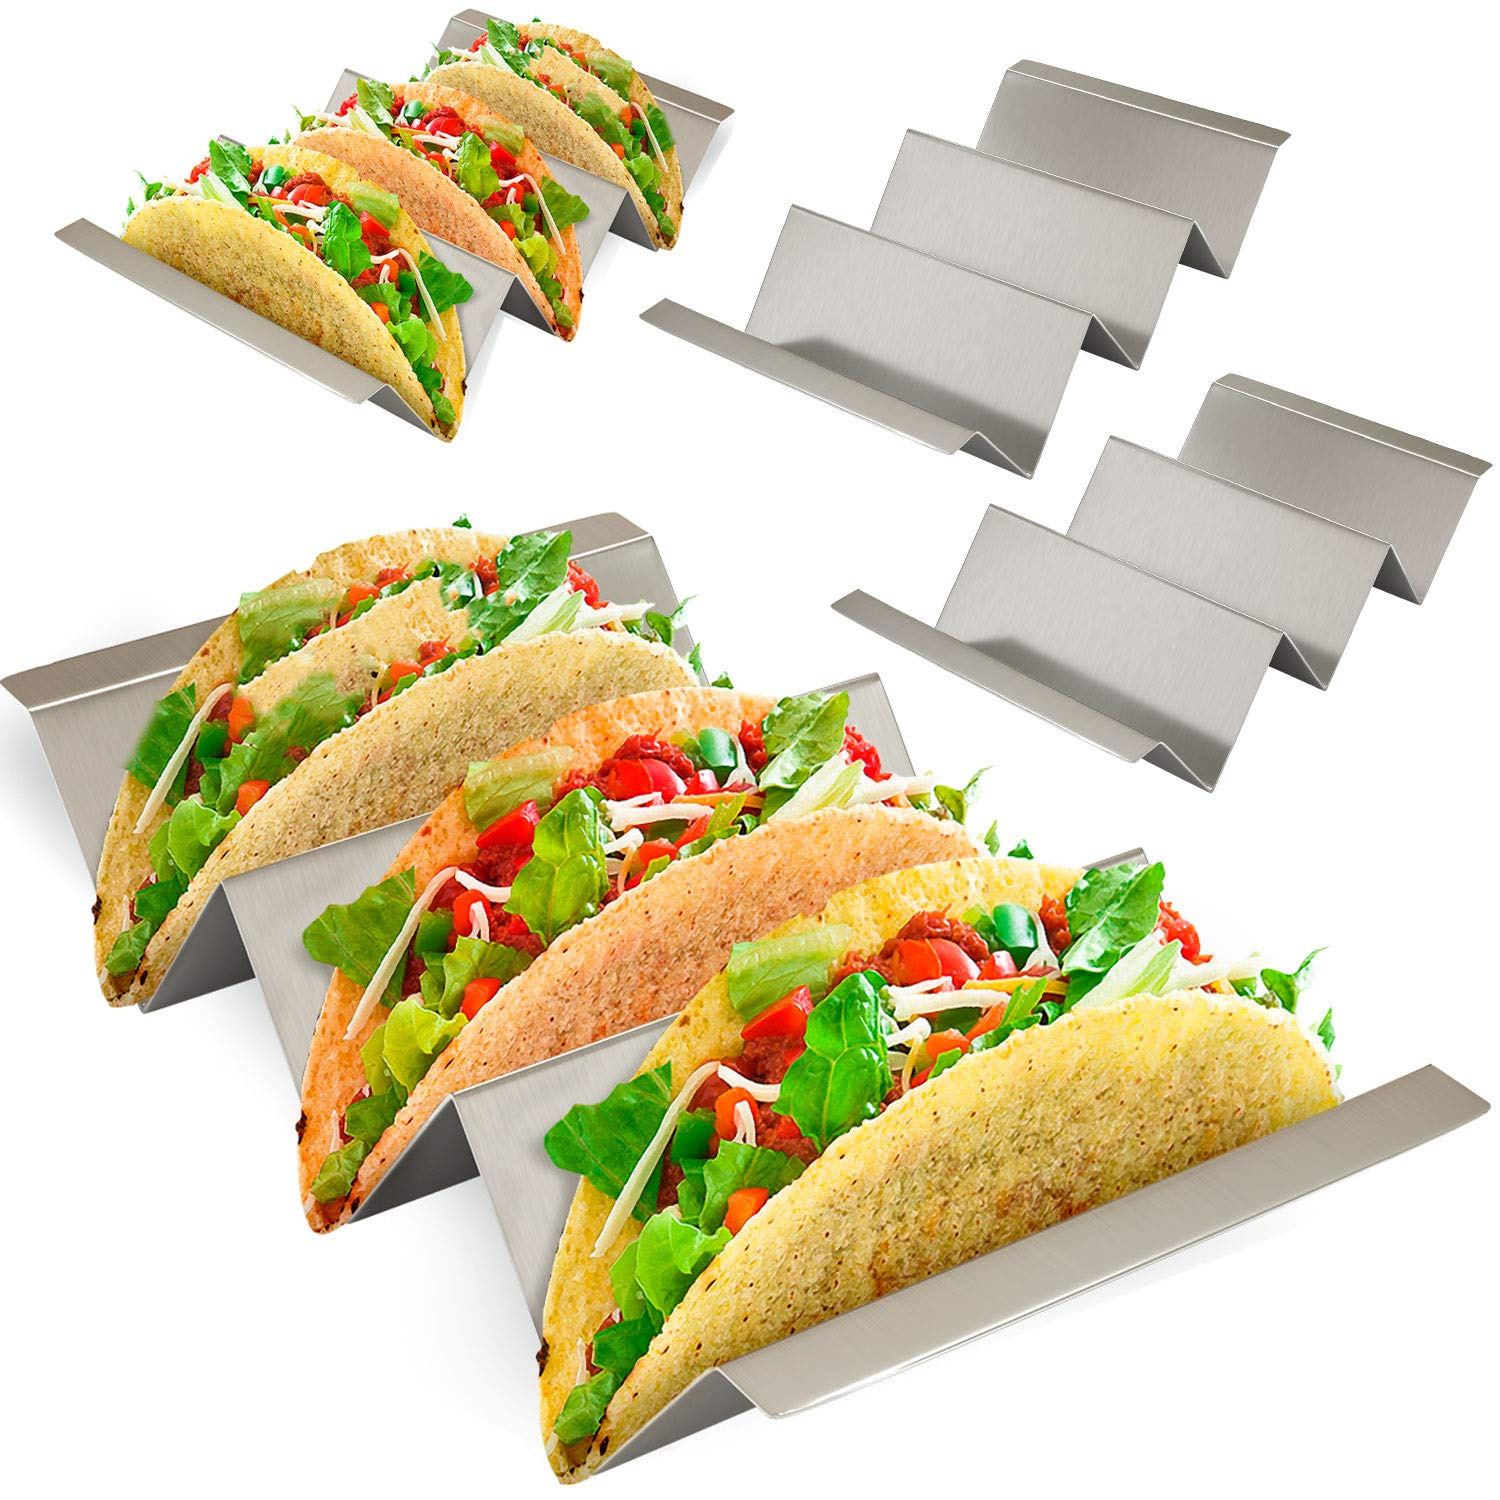 Taco Holder 4 Pack - Stainless Steel Taco Stand with No Slip Side Handles - Serve your Tacos, Fajita Mess Free - Metal Racks Holders for Taco Shell, Tortilla, Burrito And More. Oven And Grill Safe by Ultimate Hostess (Image #1)